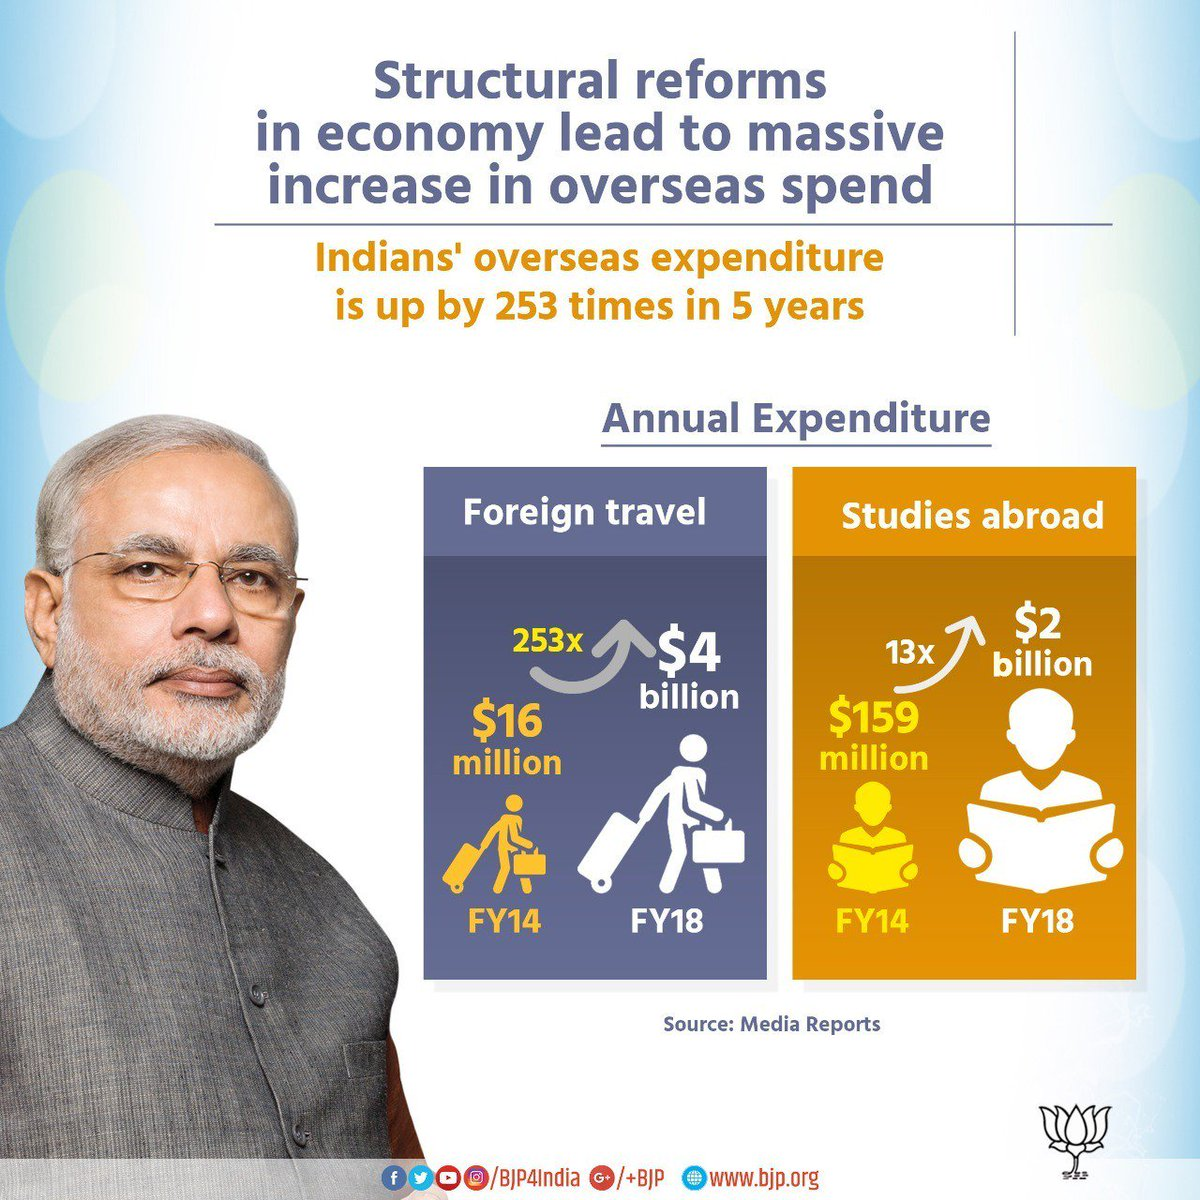 Structural reforms under Modi government led to massive increase in overseas expenditure of Indians on travel and studies abroad.